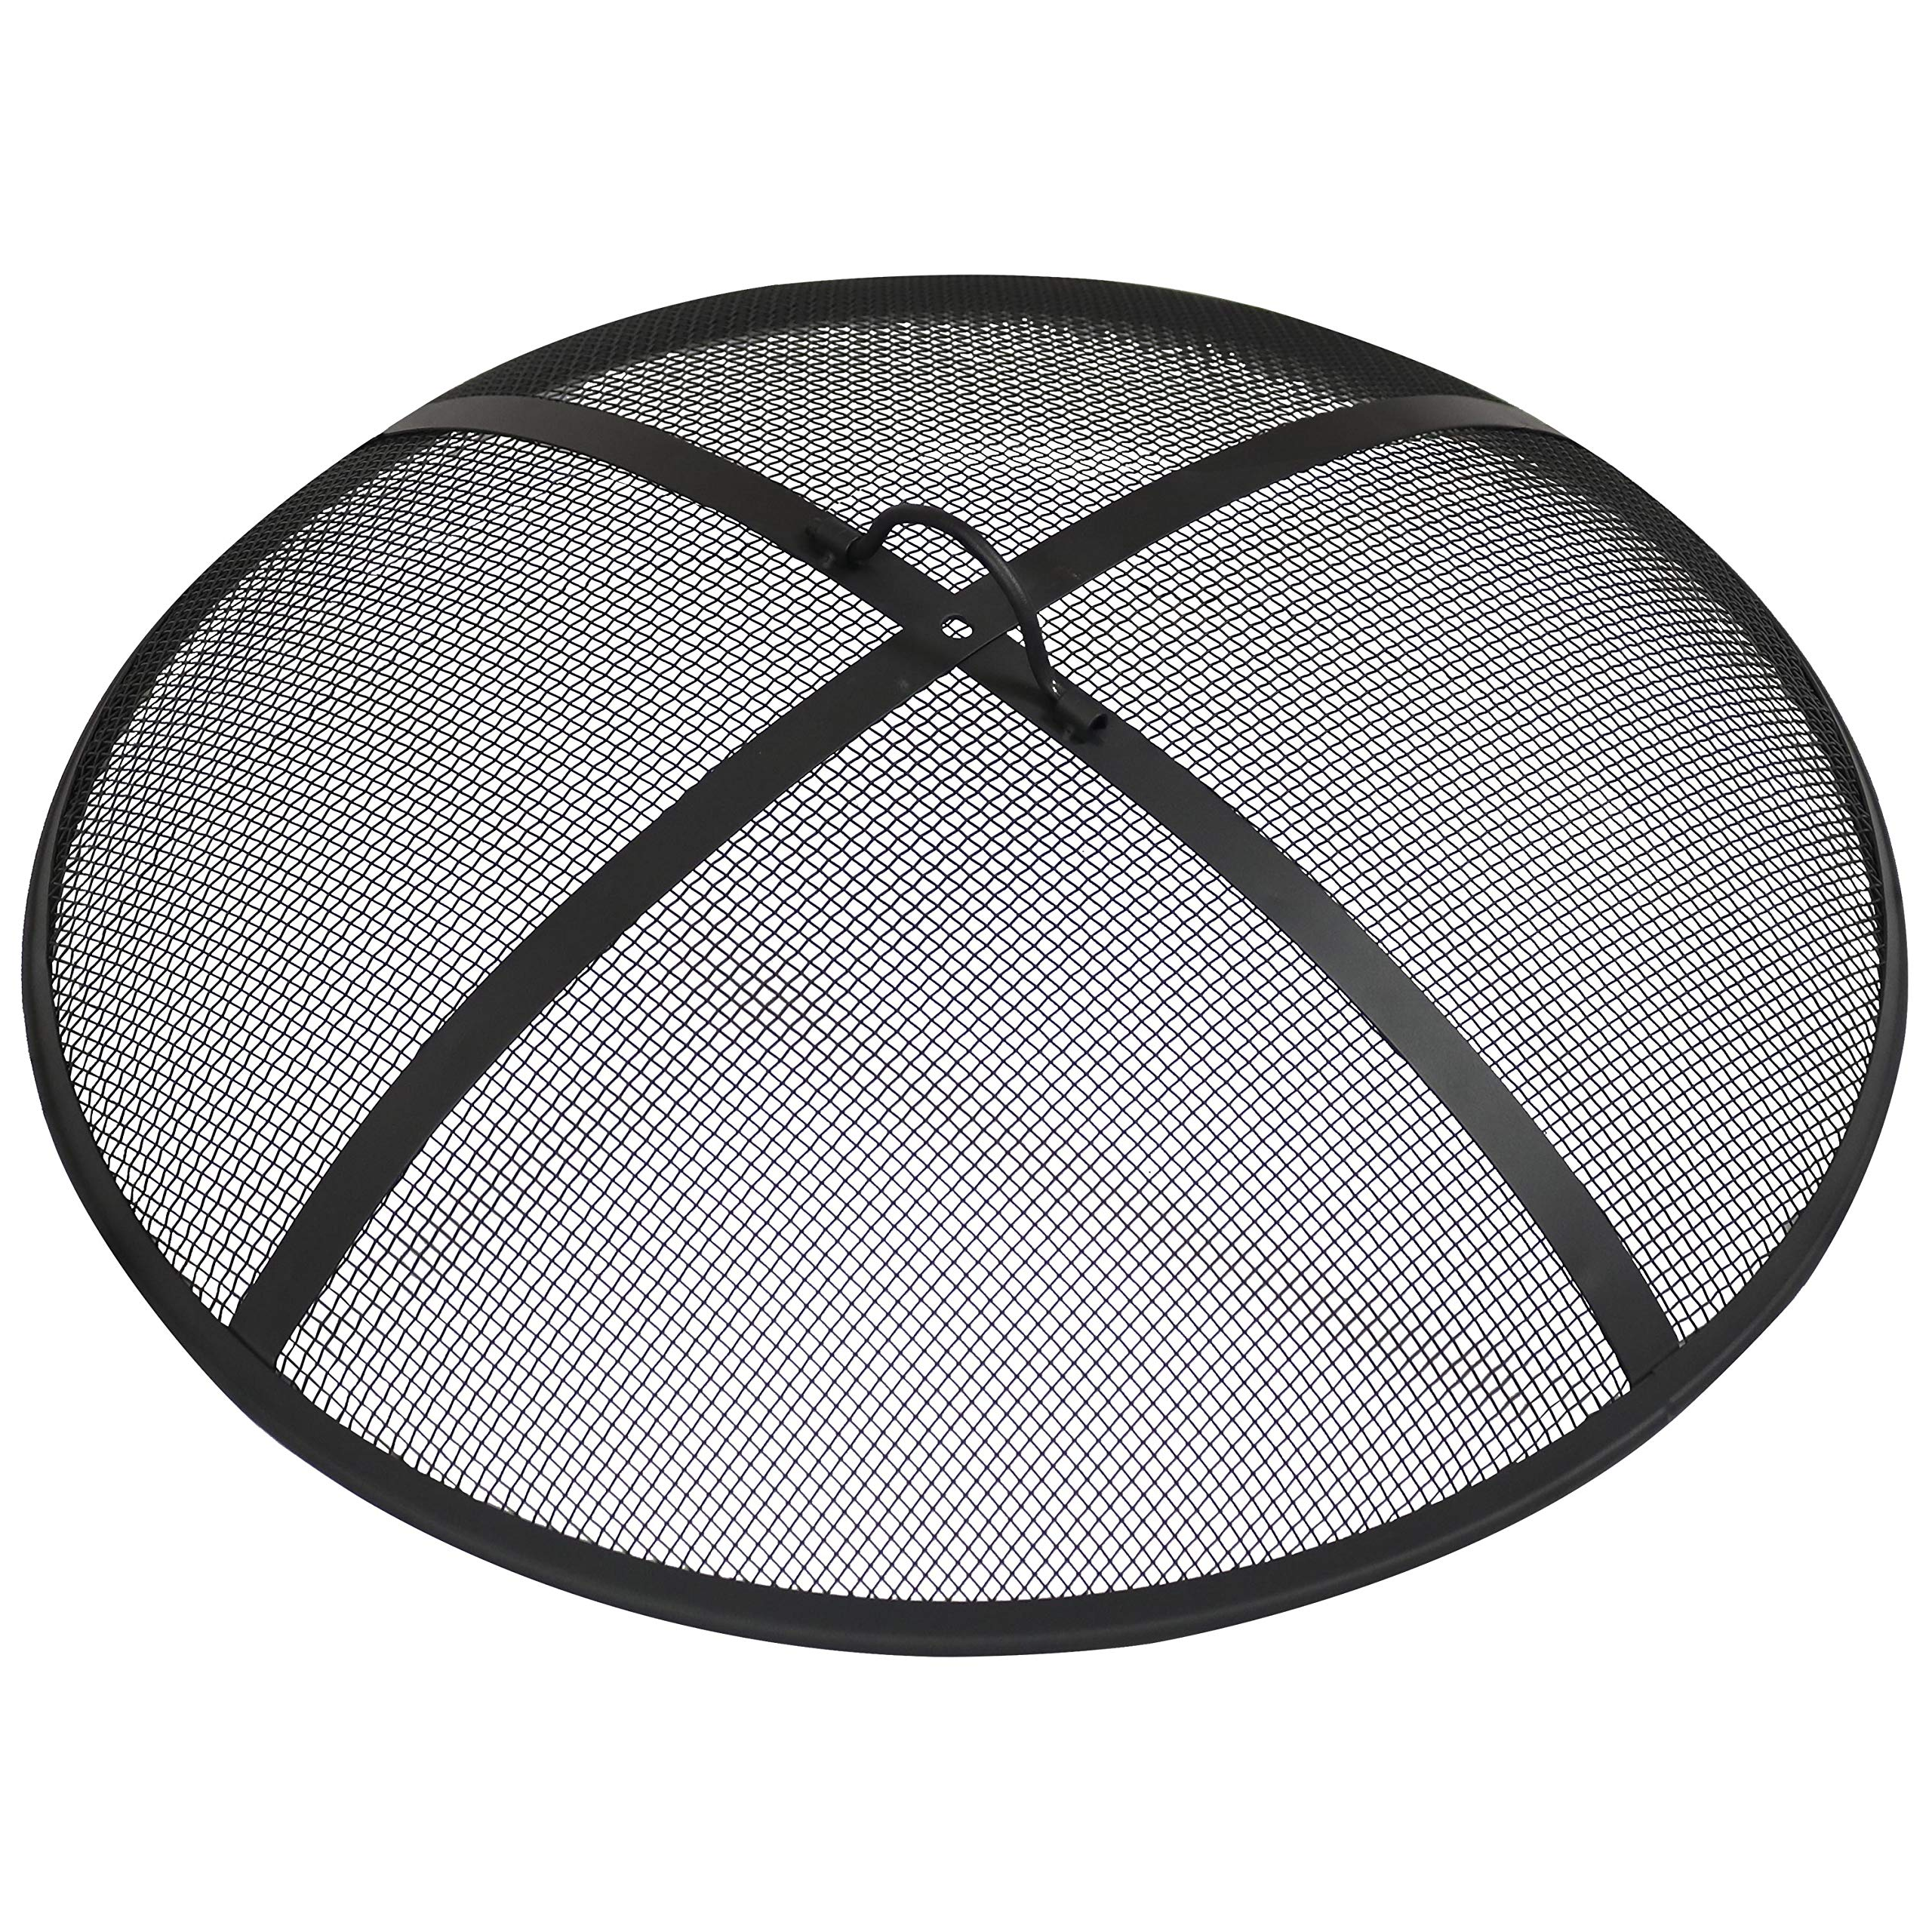 Sunnydaze Outdoor Fire Pit Spark Screen Cover Guard Accessory - Round Heavy-Duty Steel Backyard Mesh Lid Ember Arrester with Handle - 24-Inch Diameter by Sunnydaze Decor